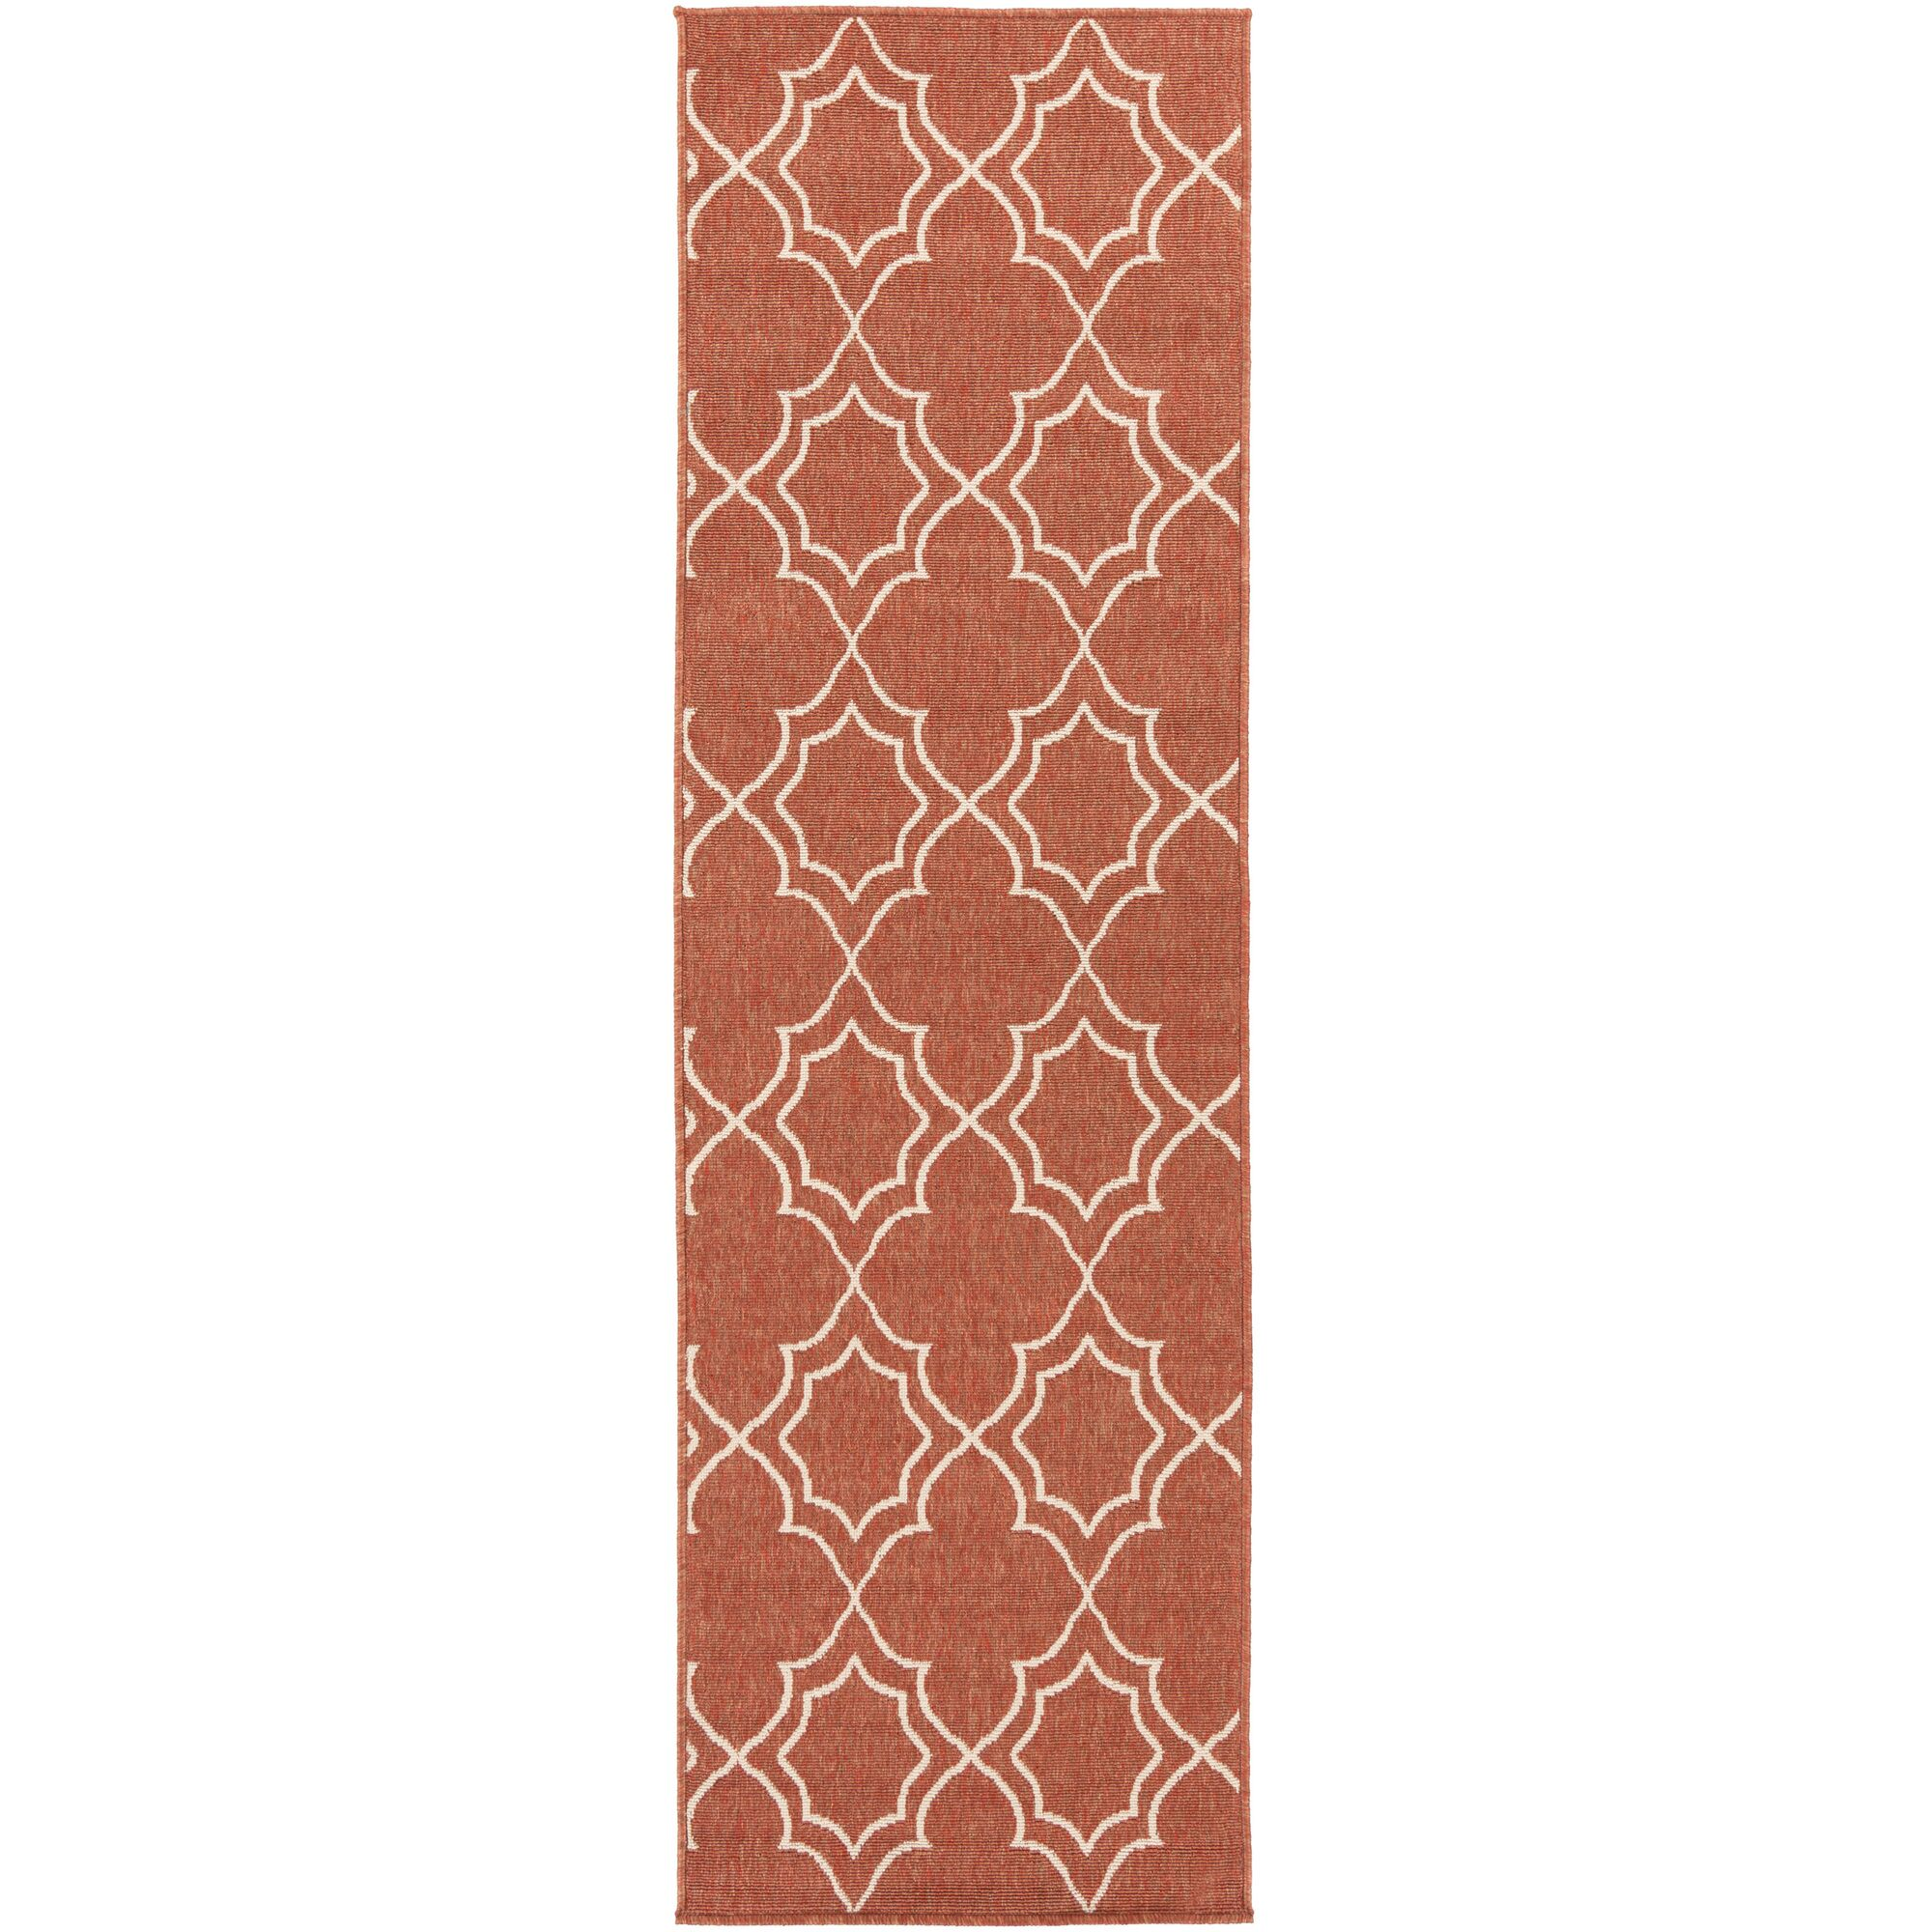 Amato Red Indoor/Outdoor Area Rug Rug Size: Runner 2'3